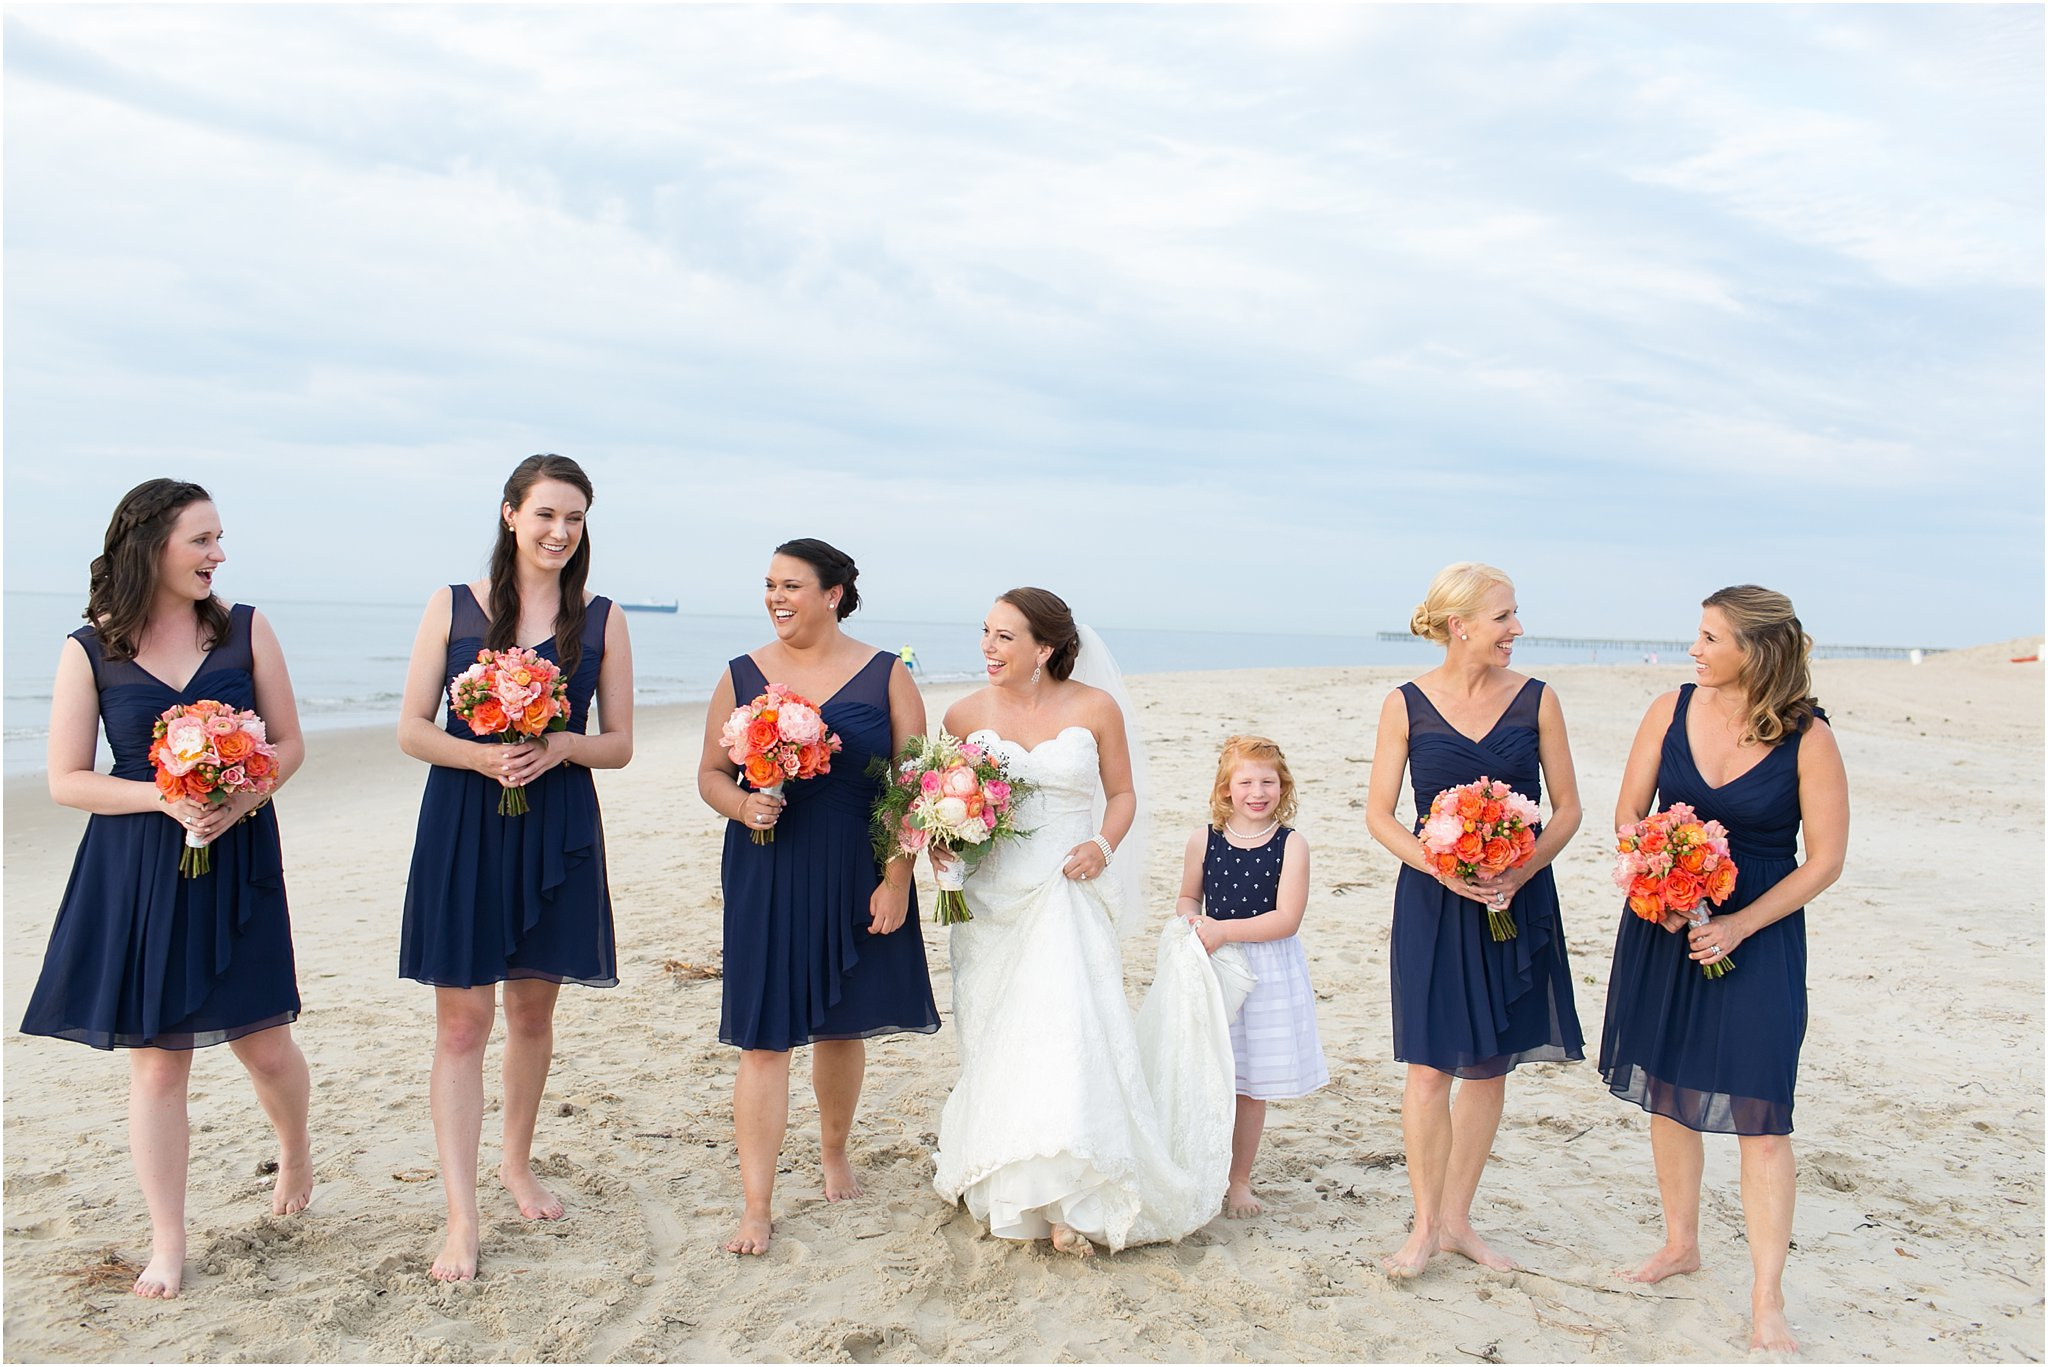 jessica_ryan_photography_wedding_photography_virginiabeach_virginia_candid_authentic_wedding_portraits_marina_shores_yacht_club_chesapeake_bay_1870